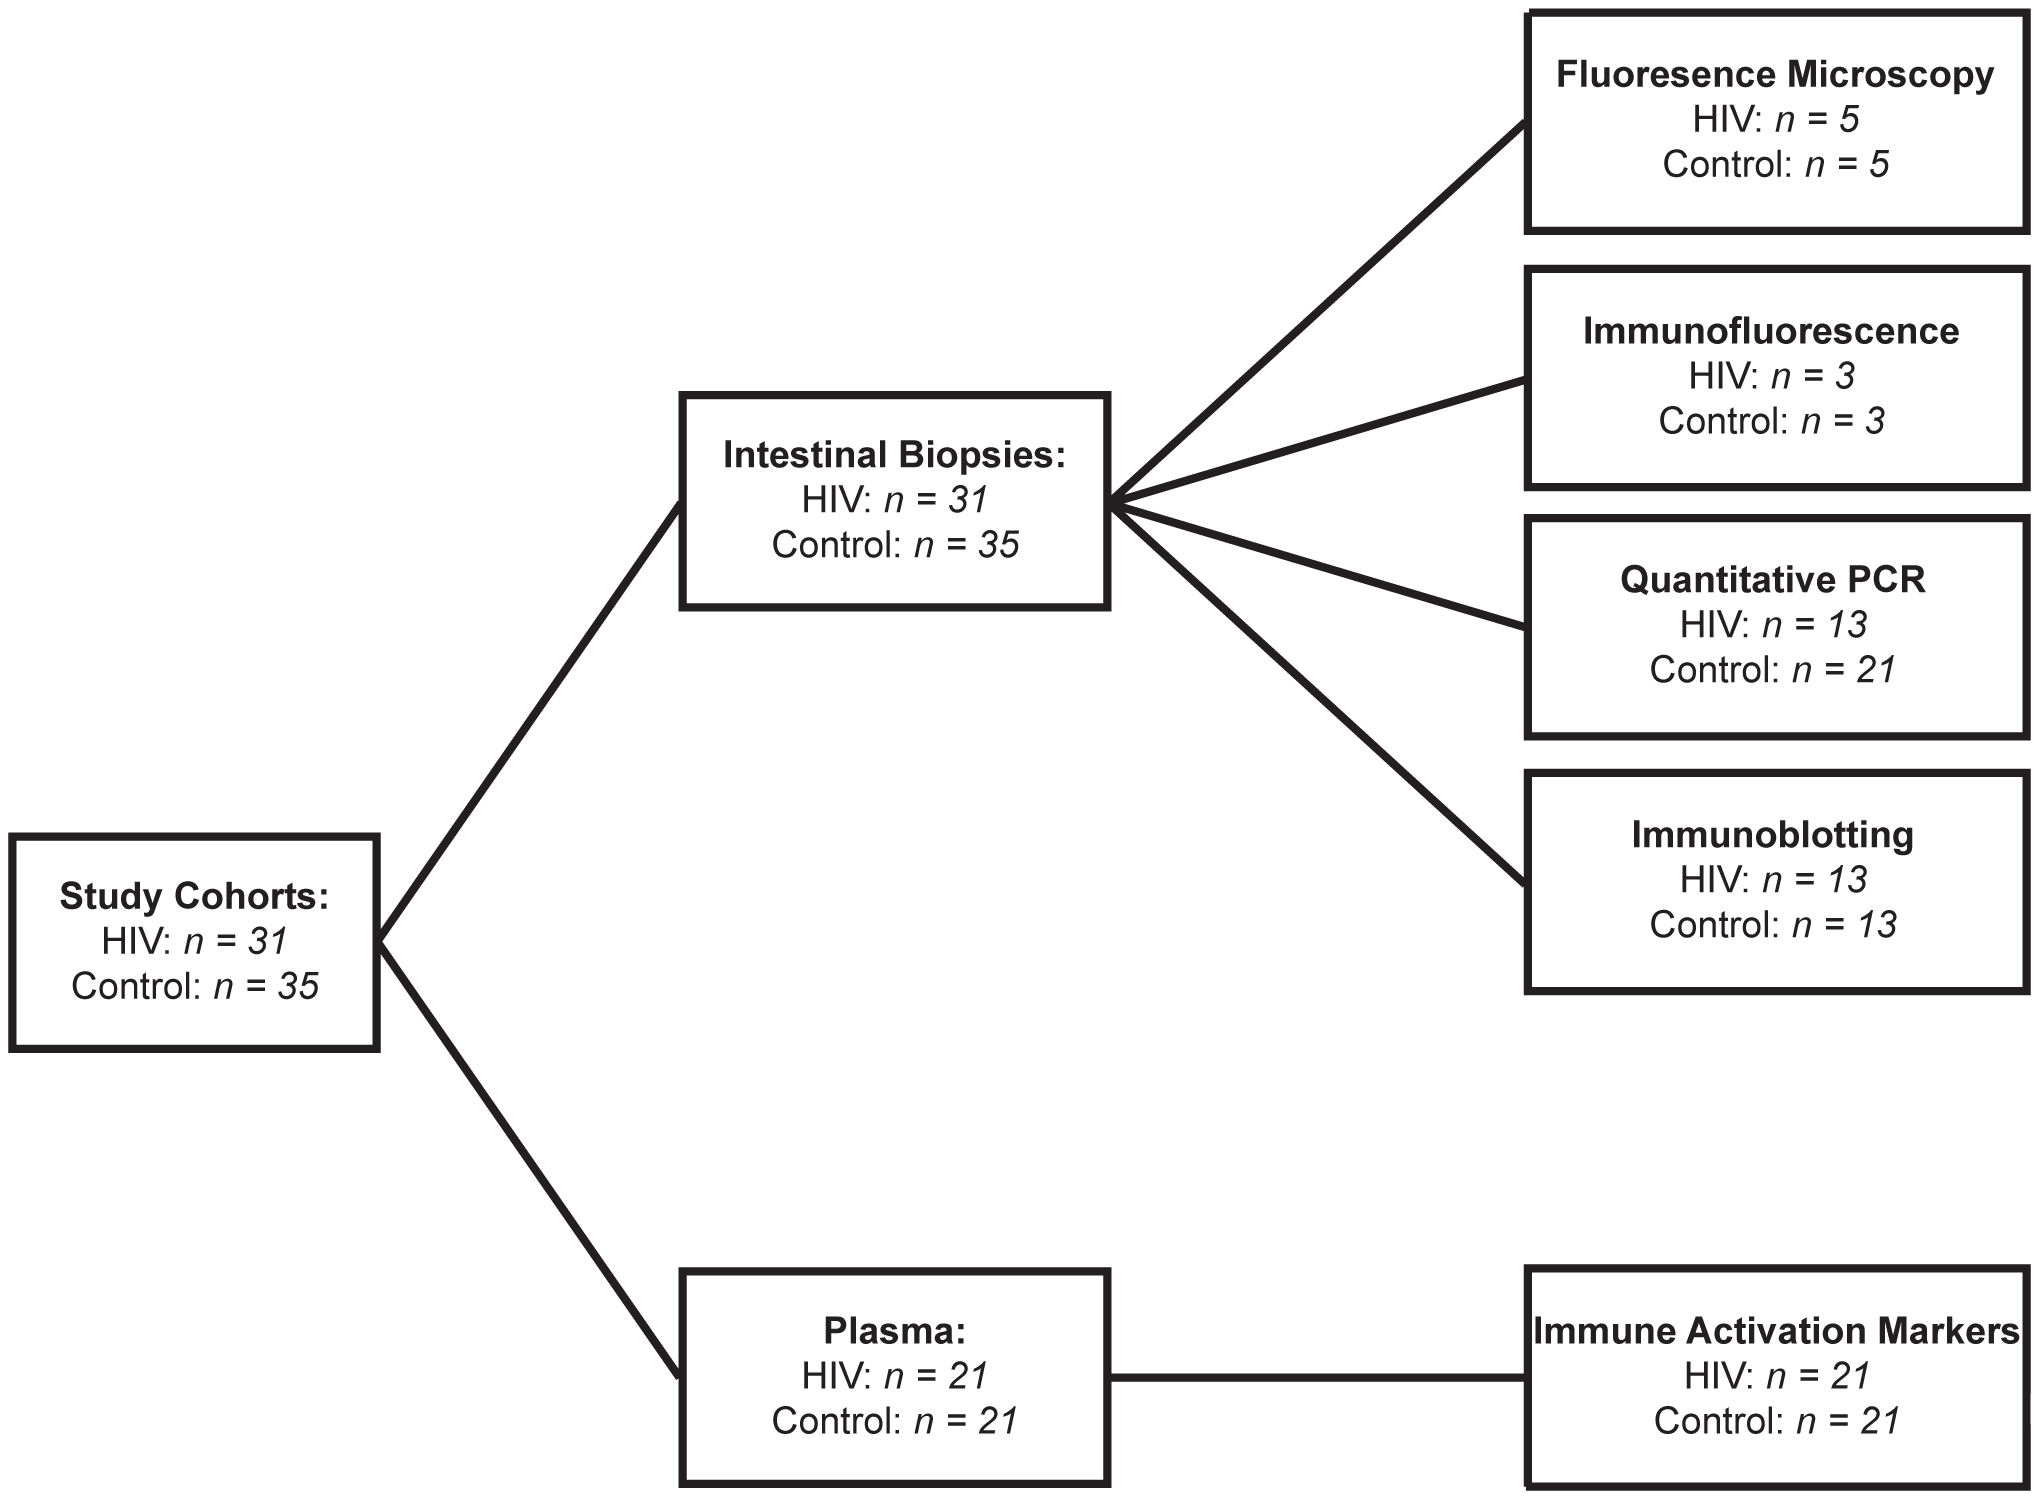 Cohort Diagram illustrating the assignment of intestinal biopsy and plasma samples to each analytical method.